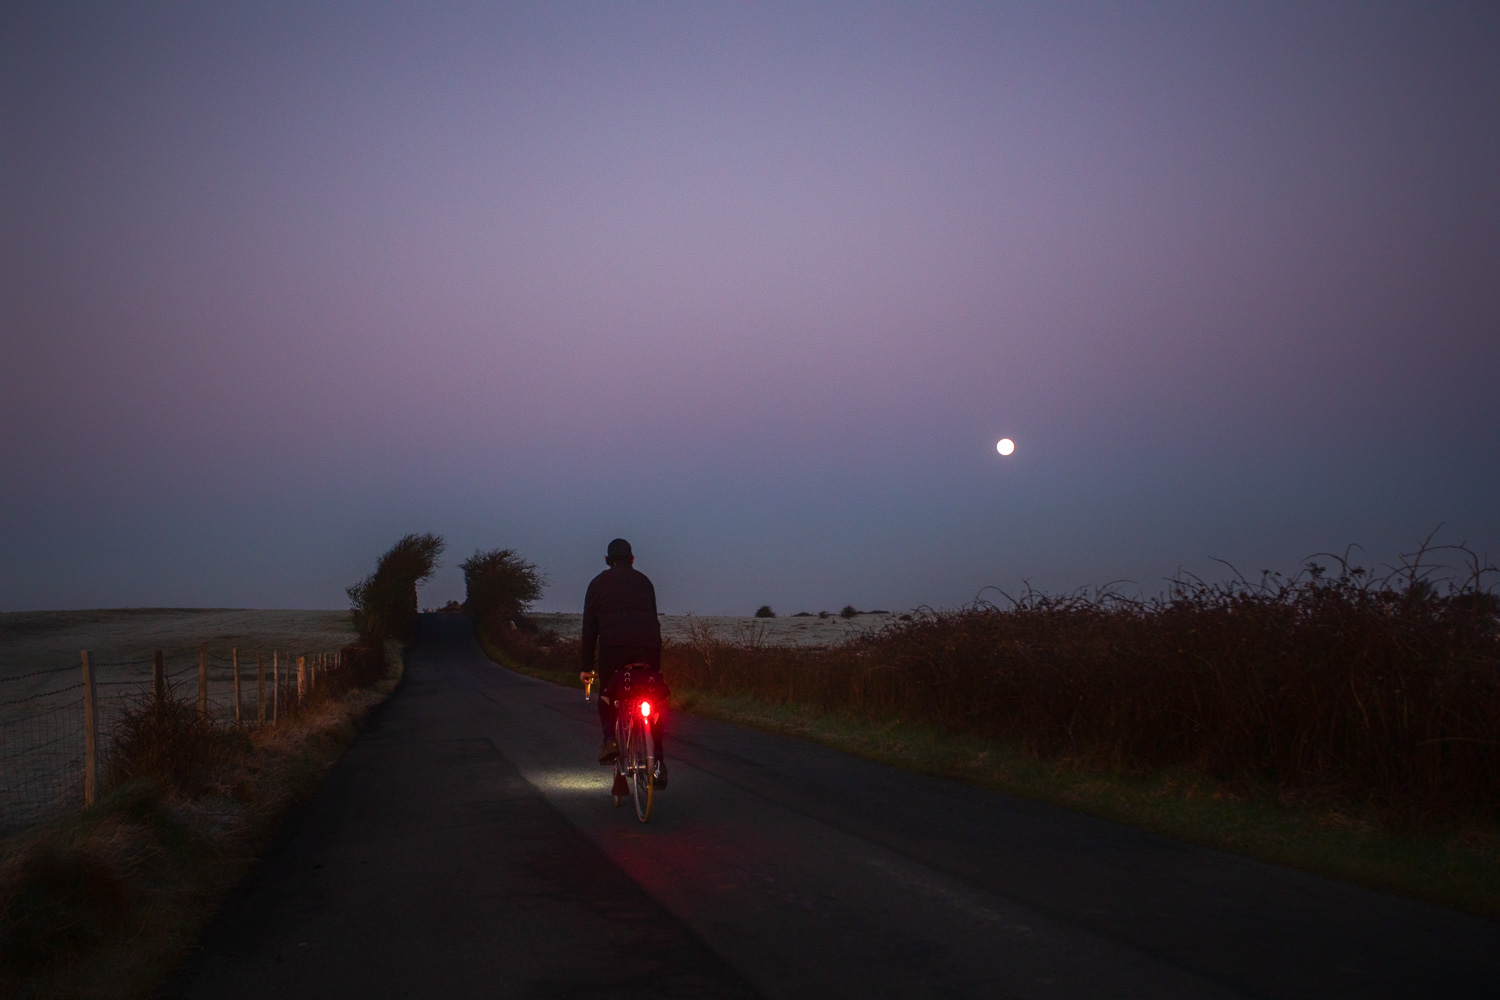 Cyclist pedalling along dark country lane with moon in the sky taillight glowing